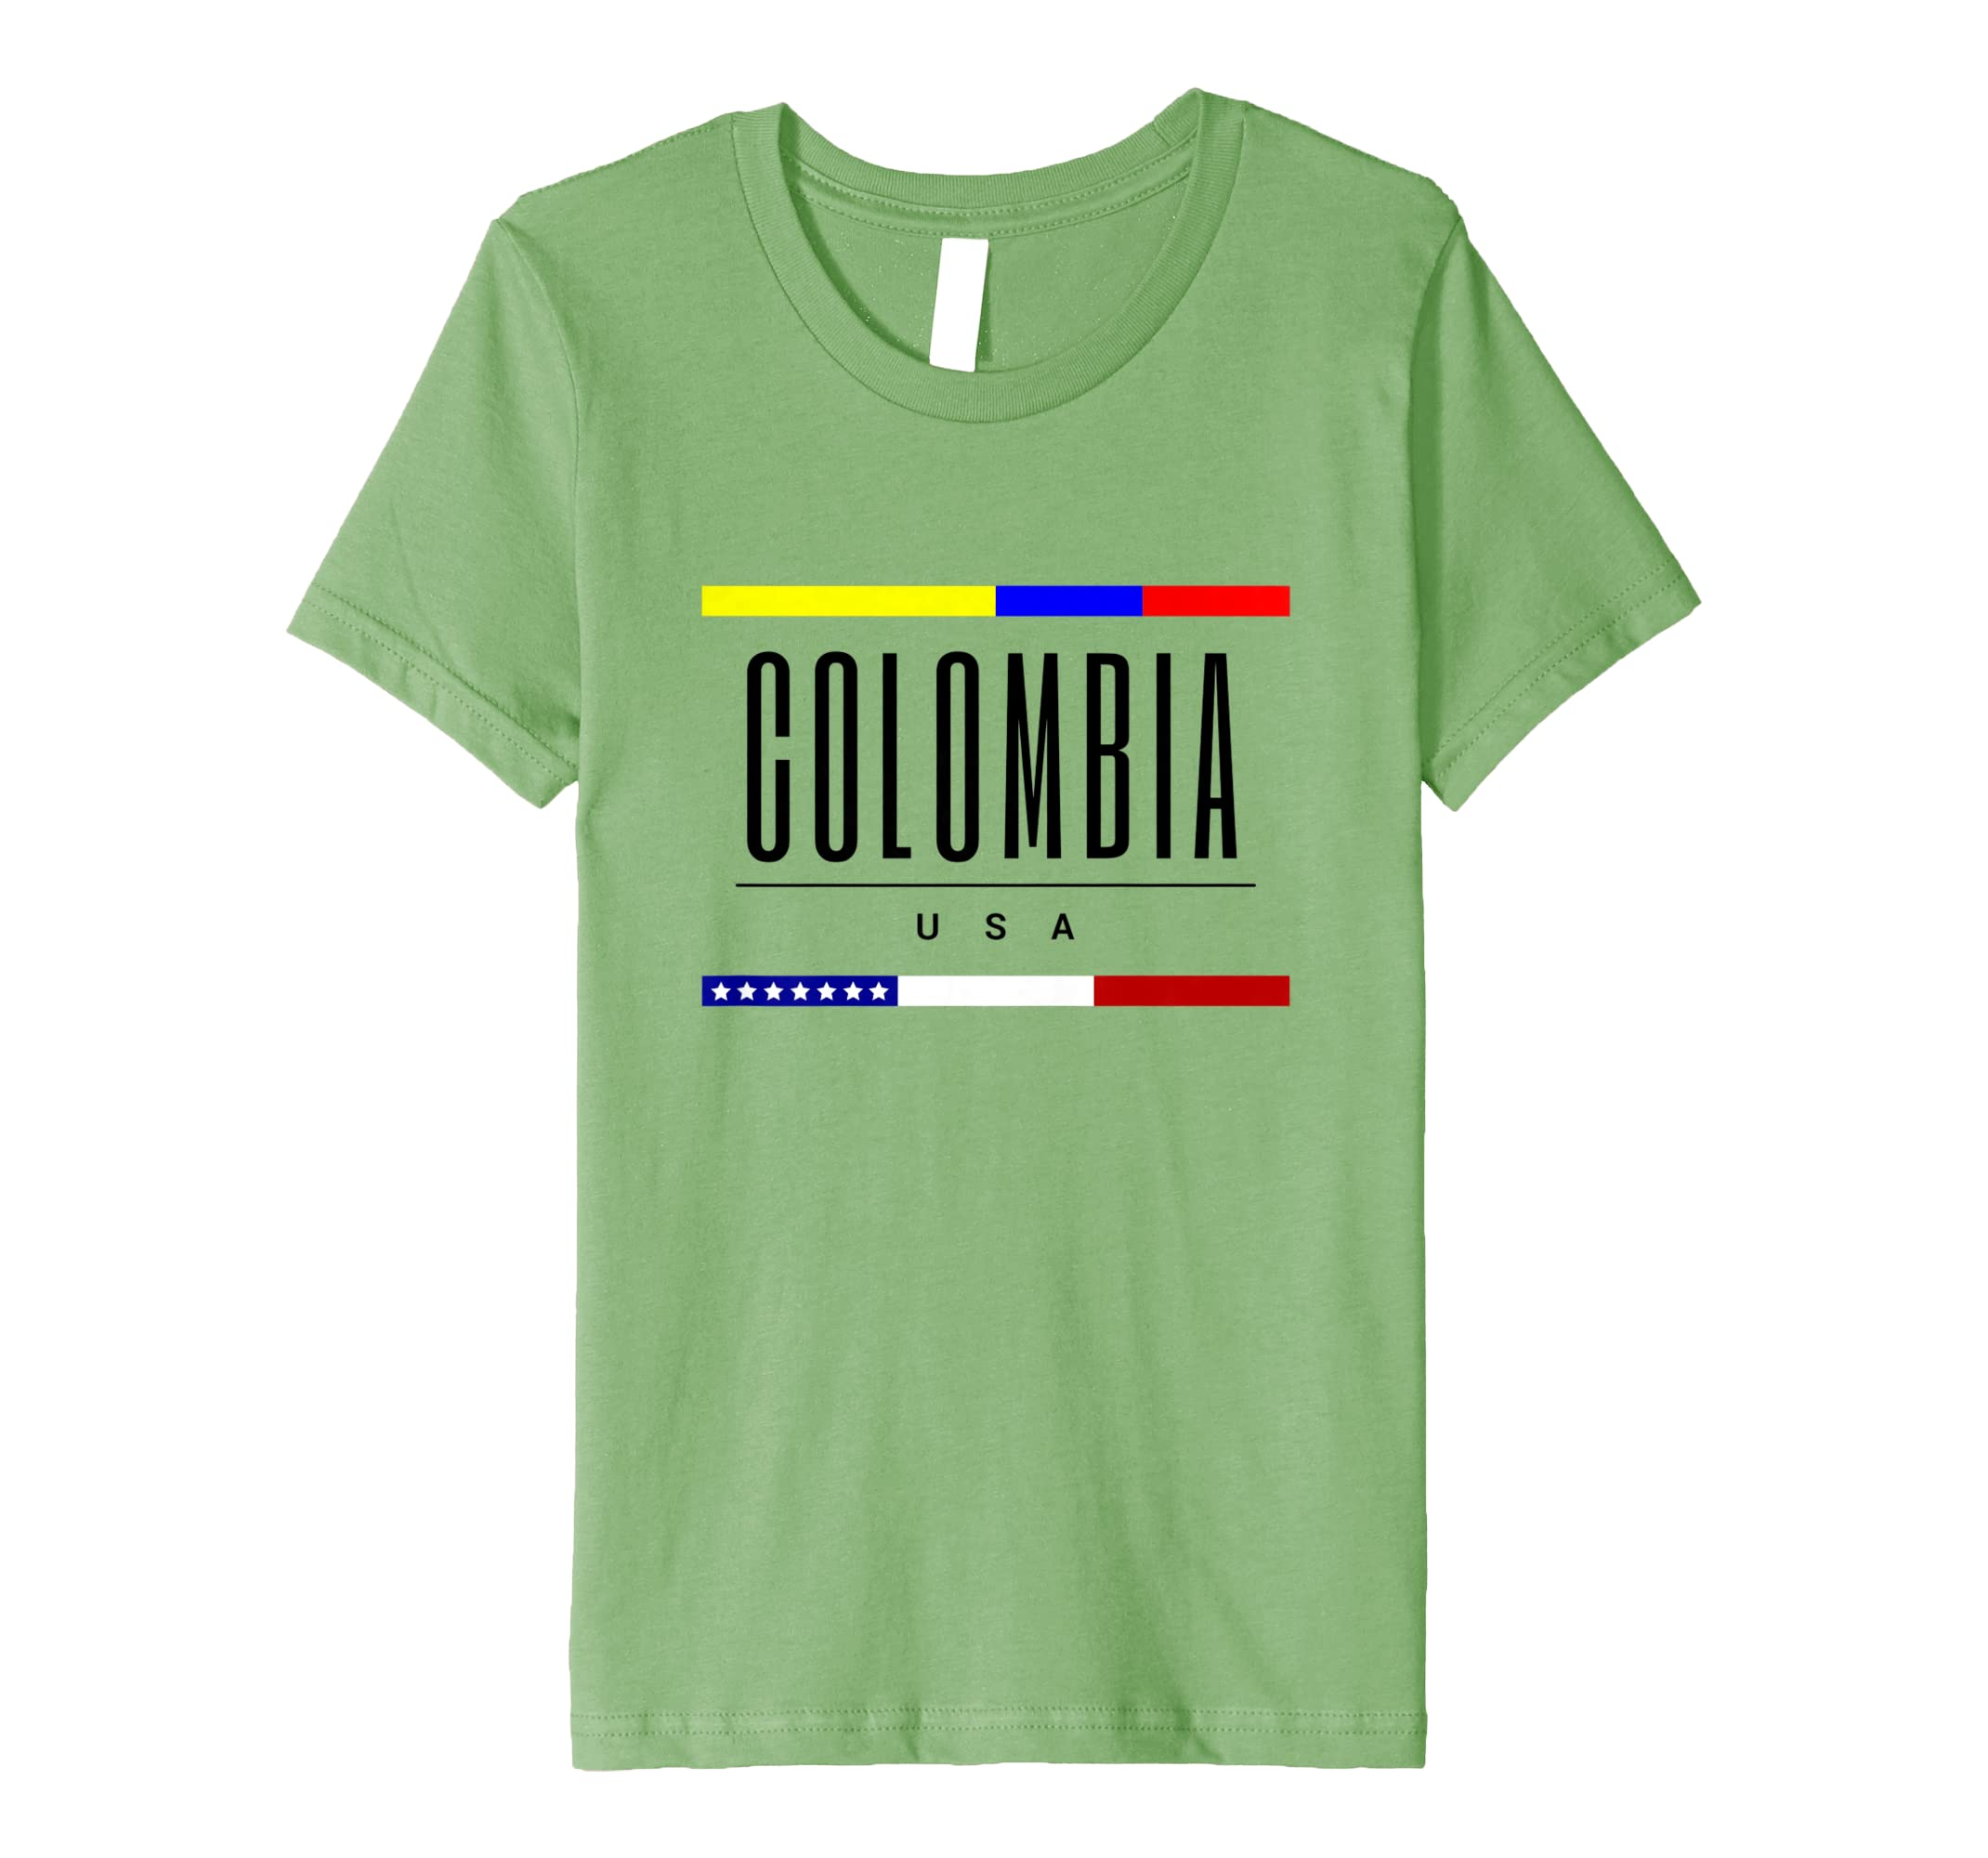 Amazon.com: Colombia USA flag friendship love born family tee gift: Clothing